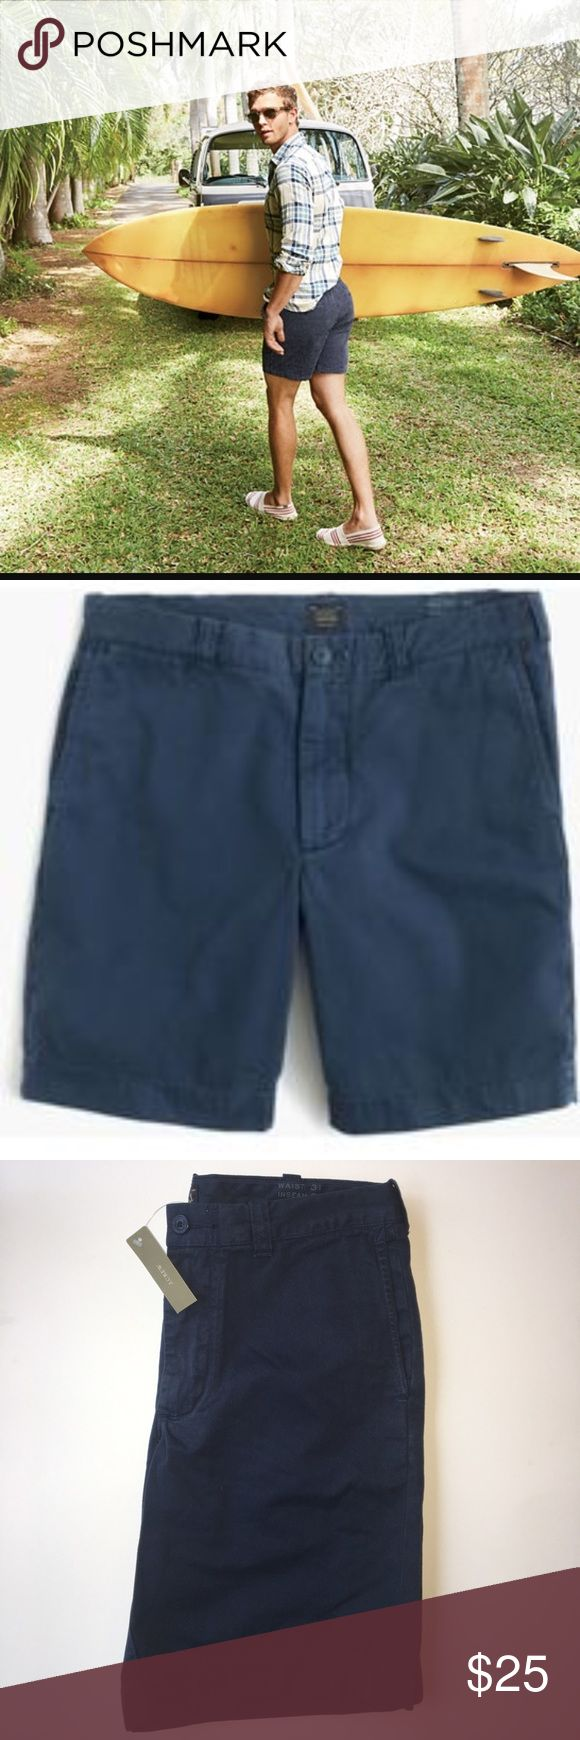 """J. Crew 9"""" Garment Dyed Short BNWT Navy blue chino shorts, 9"""" inseam. 100% cotton, fit true to size. S&P free home. J. Crew Shorts Flat Front"""